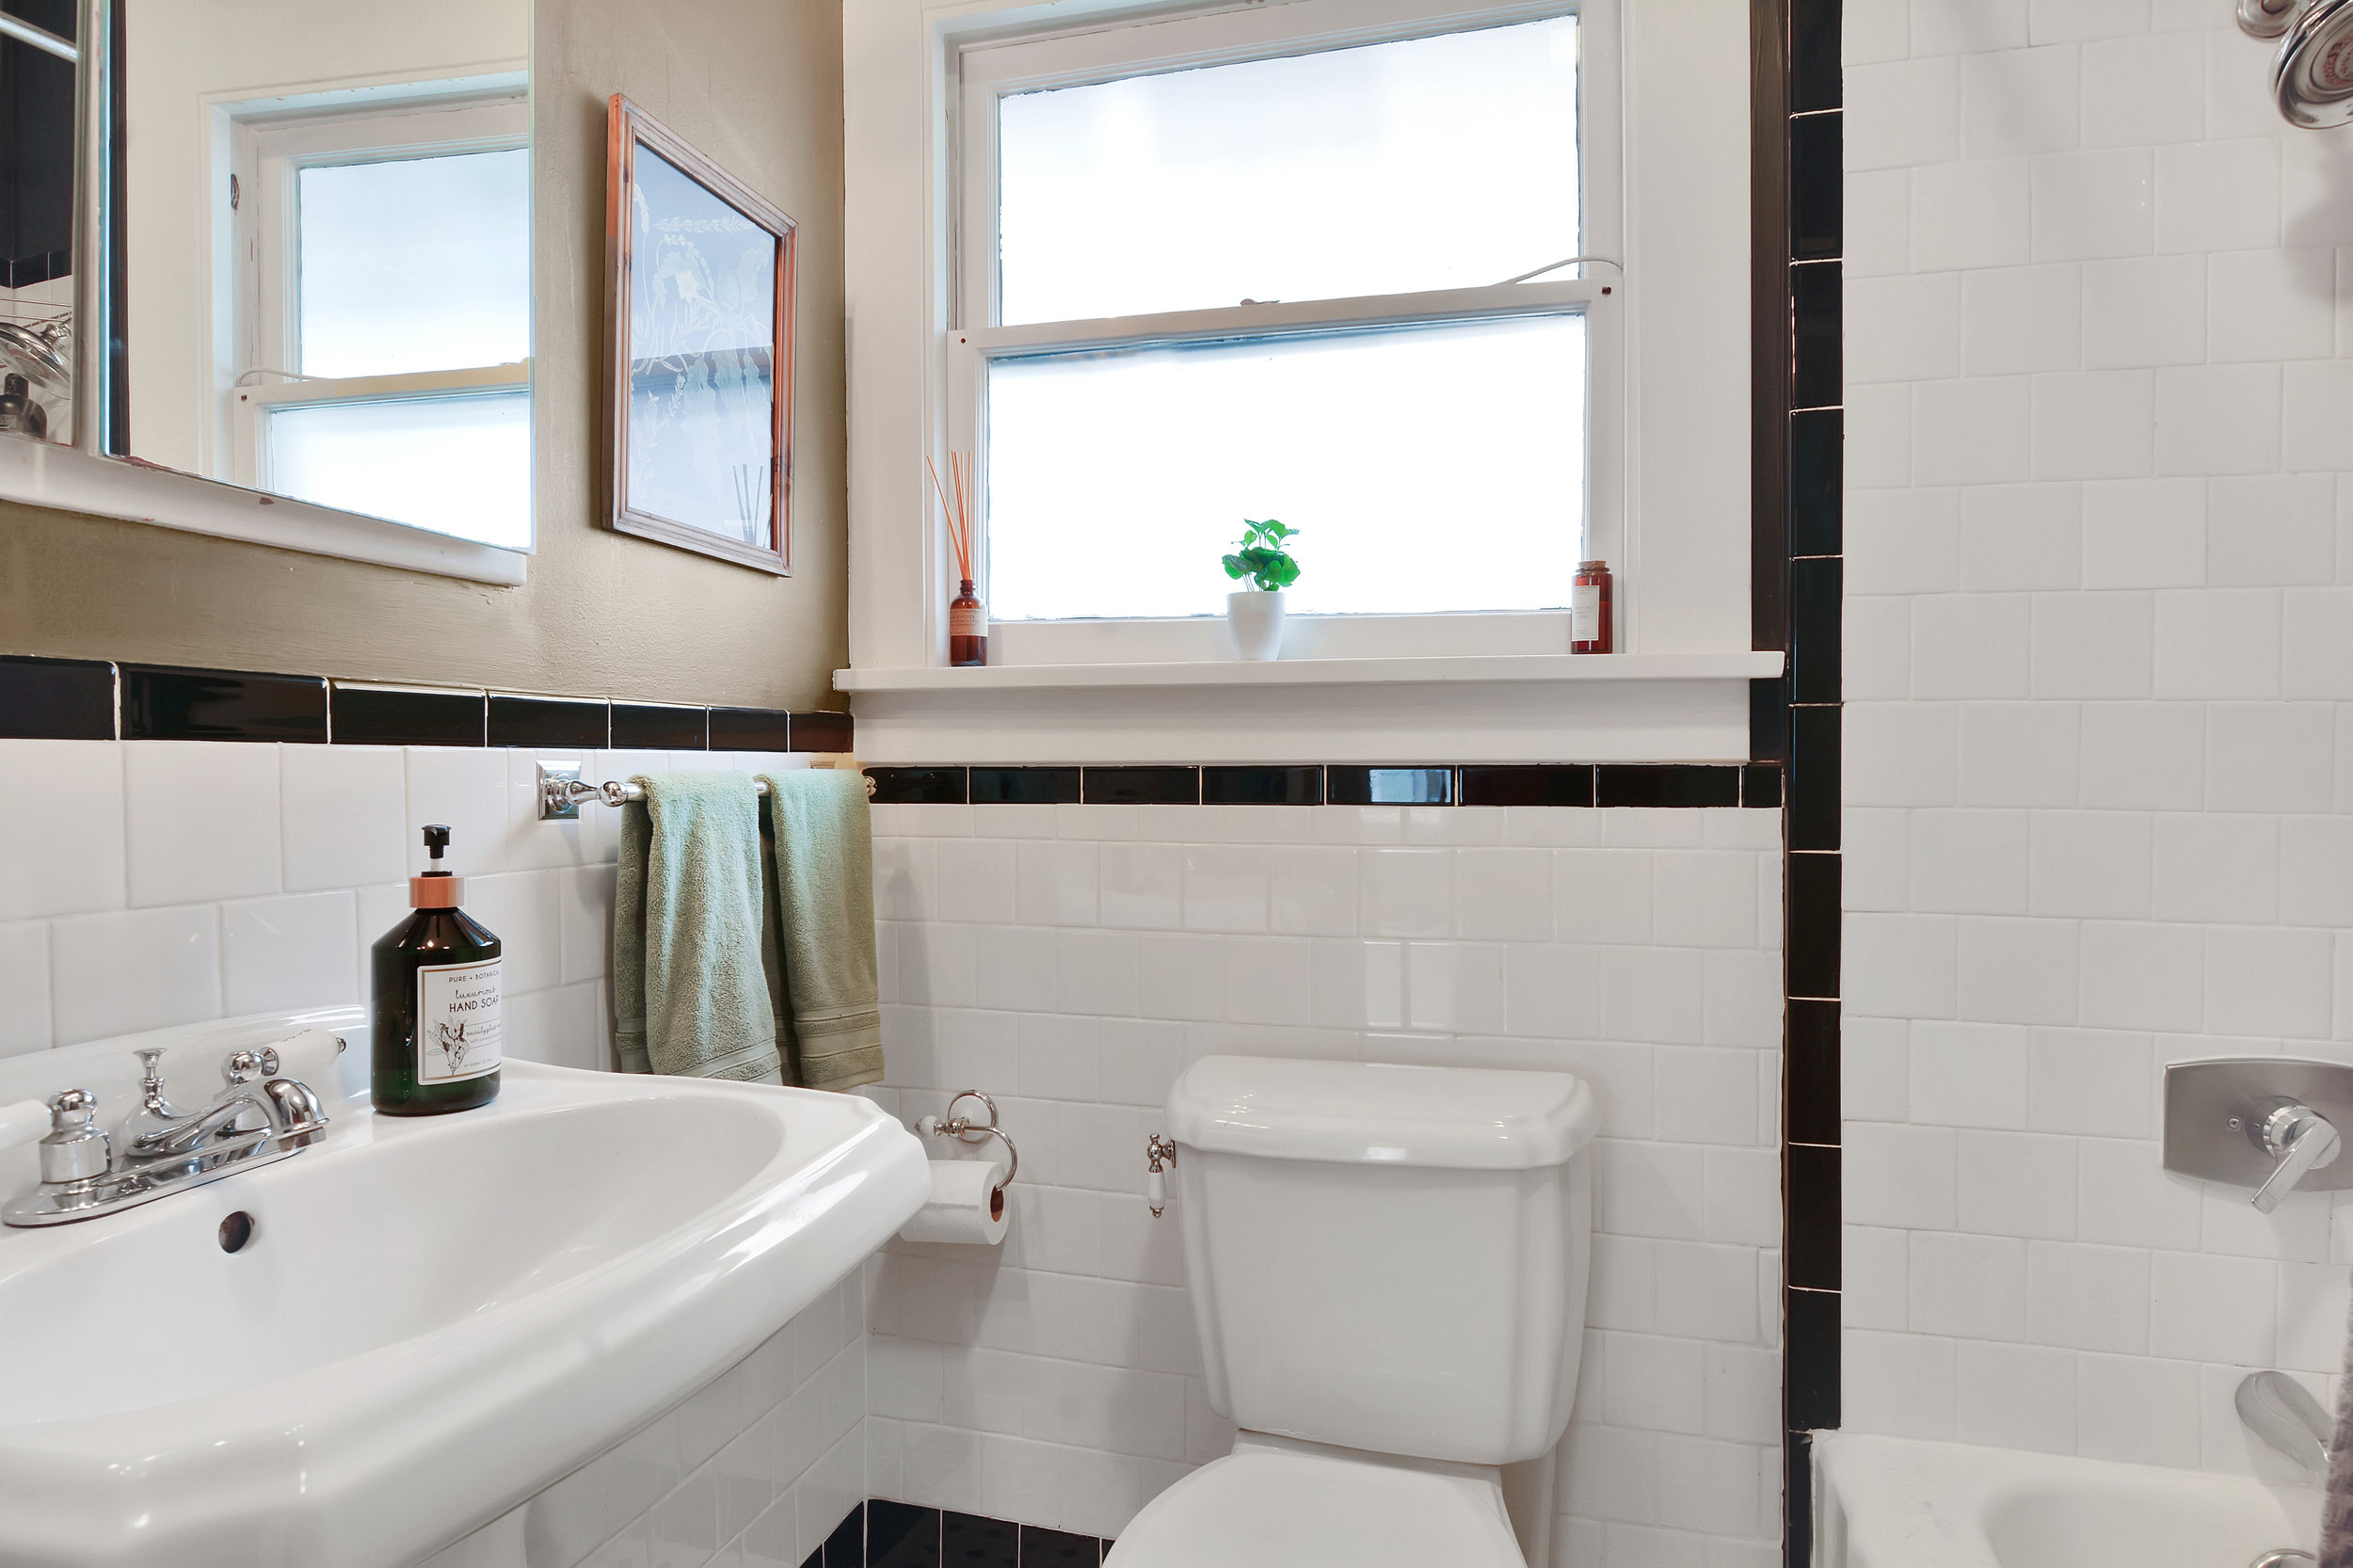 Main floor full bath with black and white tile, pedestal sink, shower/tub combo, and medicine chest mirror.